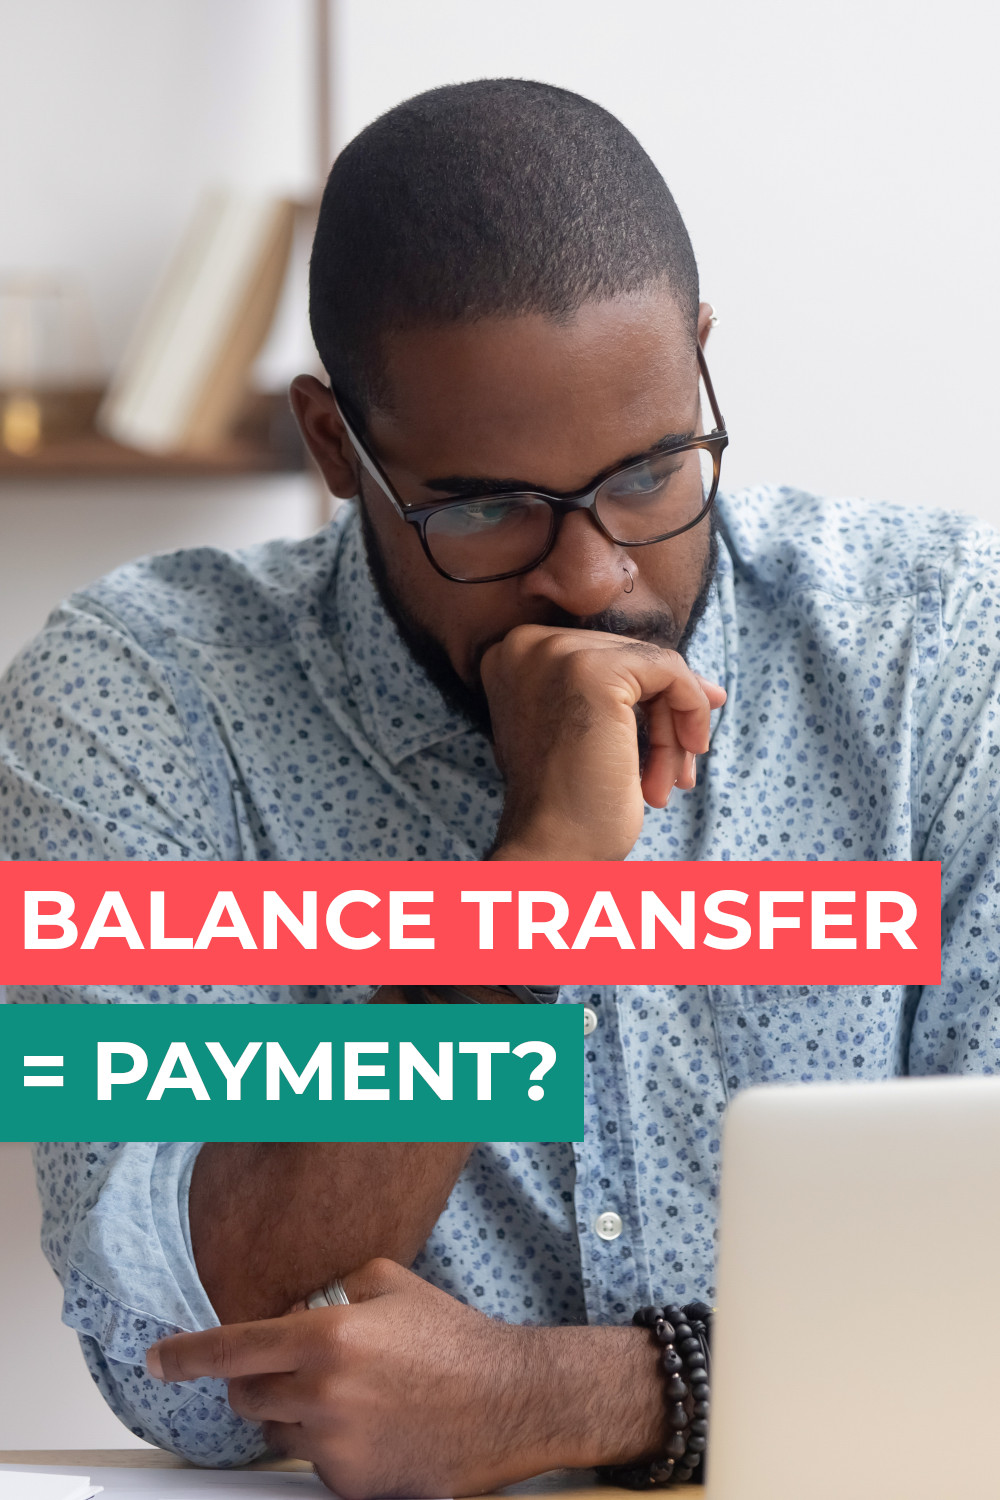 Does a balance transfer count as a payment? The complete guide explaining when it does and when it may not.